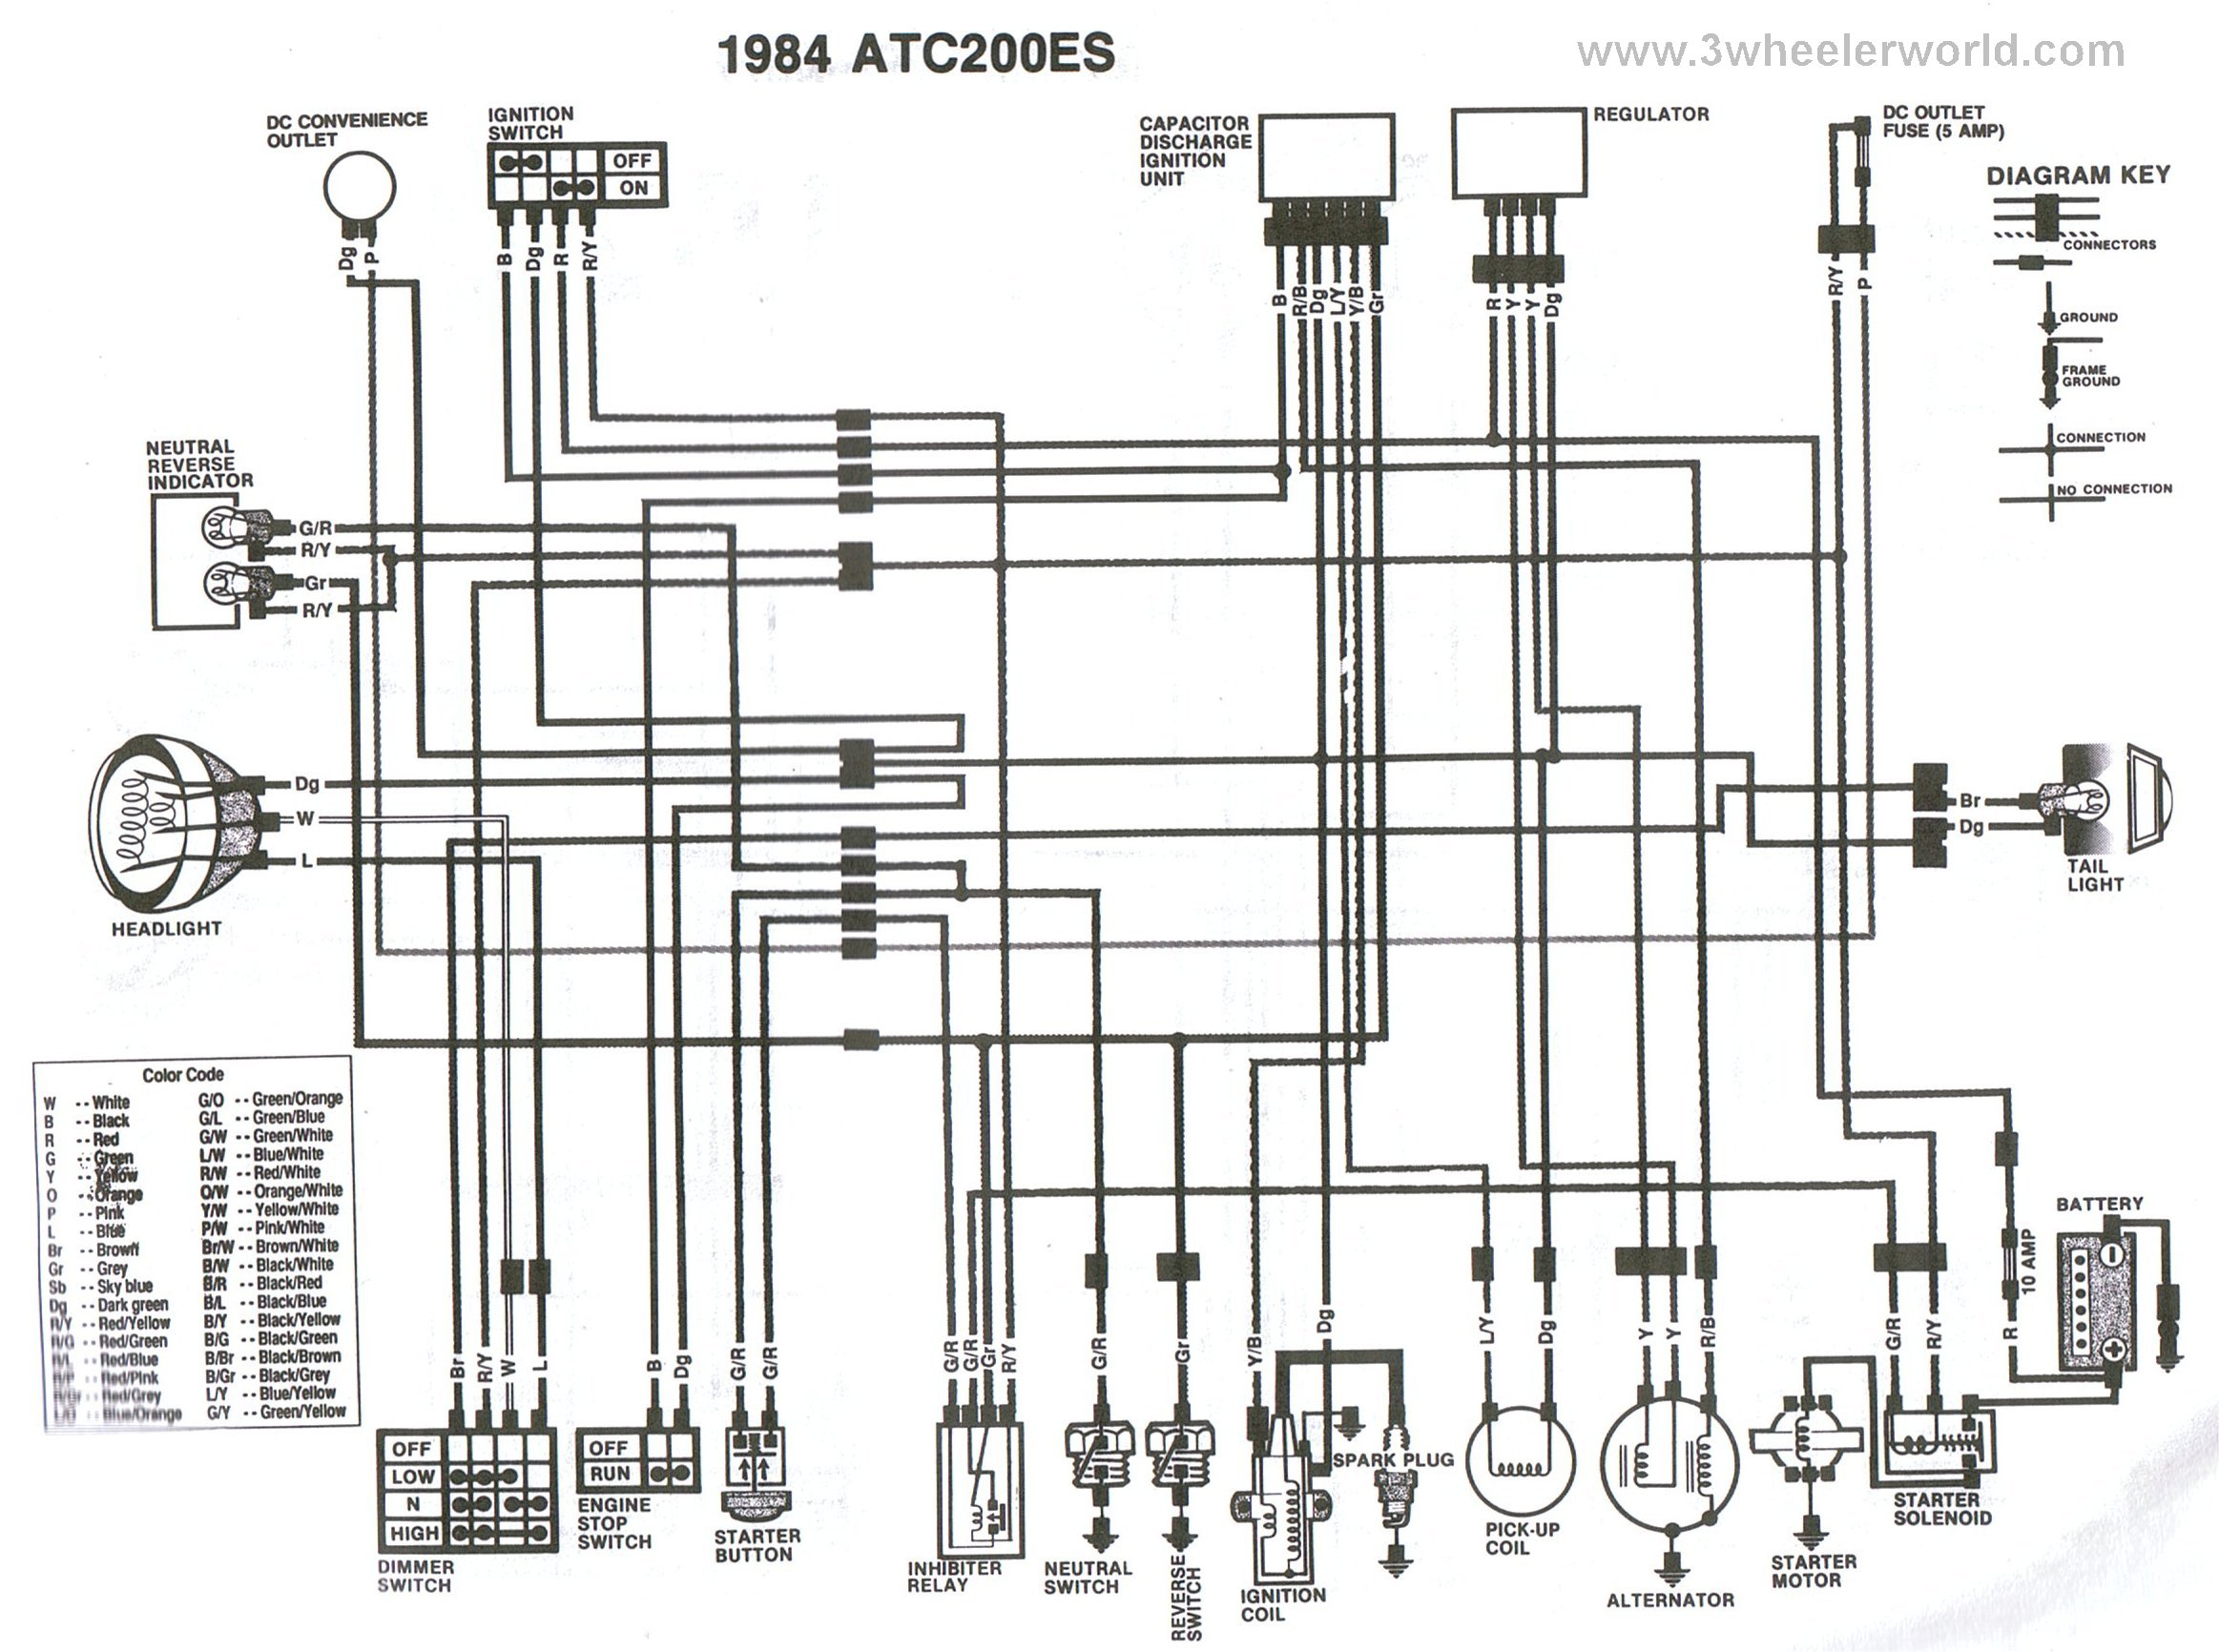 Wiring Diagram For Honda Trx200